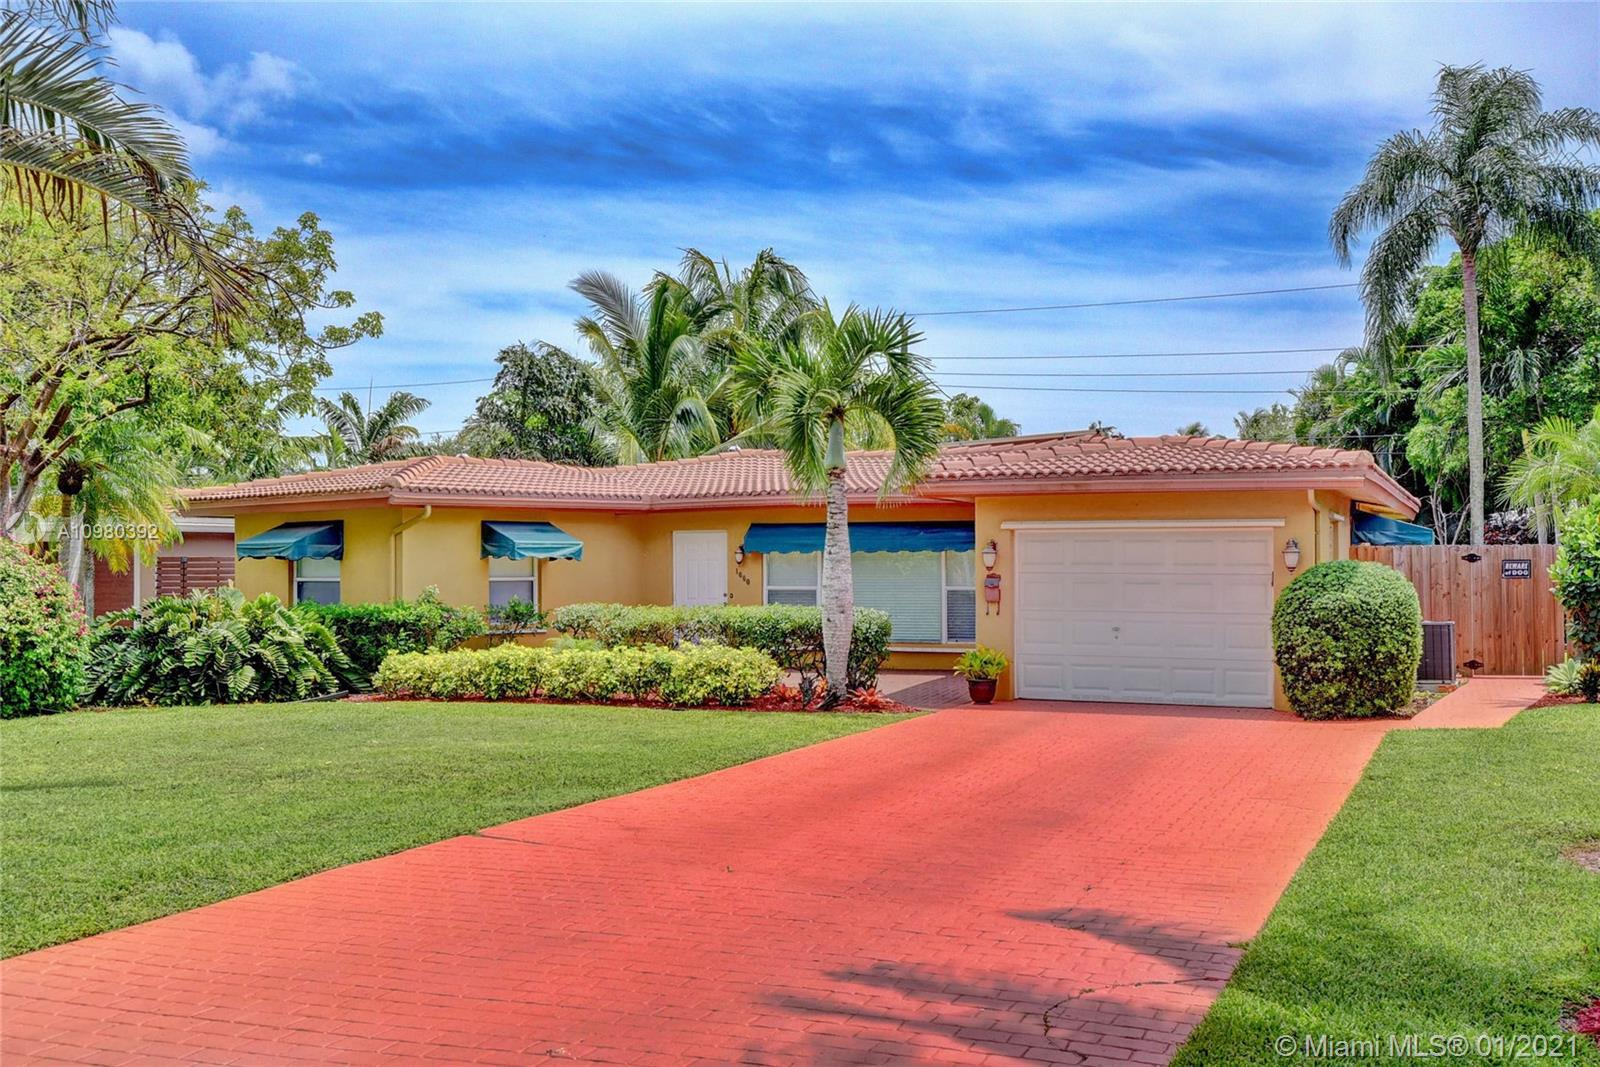 Beautiful remodeled pool home in the heart of Poinsettia Heights. Lush, mature landscaping and open, well appointed backyard designed for entertaining. Spacious 2 bedroom home with ample closet space, lots of storage, 2 full bathrooms including steam shower, Jacuzzi jetted tub, and nice big shower with seat. Master bedroom has French doors that open to pool area. Solar panels, pool, hot tub, all pool/spa equipment is new and stays. Outdoor shower with hot/cold water. Brand new 3500 ton A/C unit one year old with 9 year warranty. One car garage with built-ins, great curb appeal, and plenty of privacy. New fence with hurricane resistant gate panels, and durable, easy to install hurricane shutters for all windows and doors. Plus wonderful neighbors!